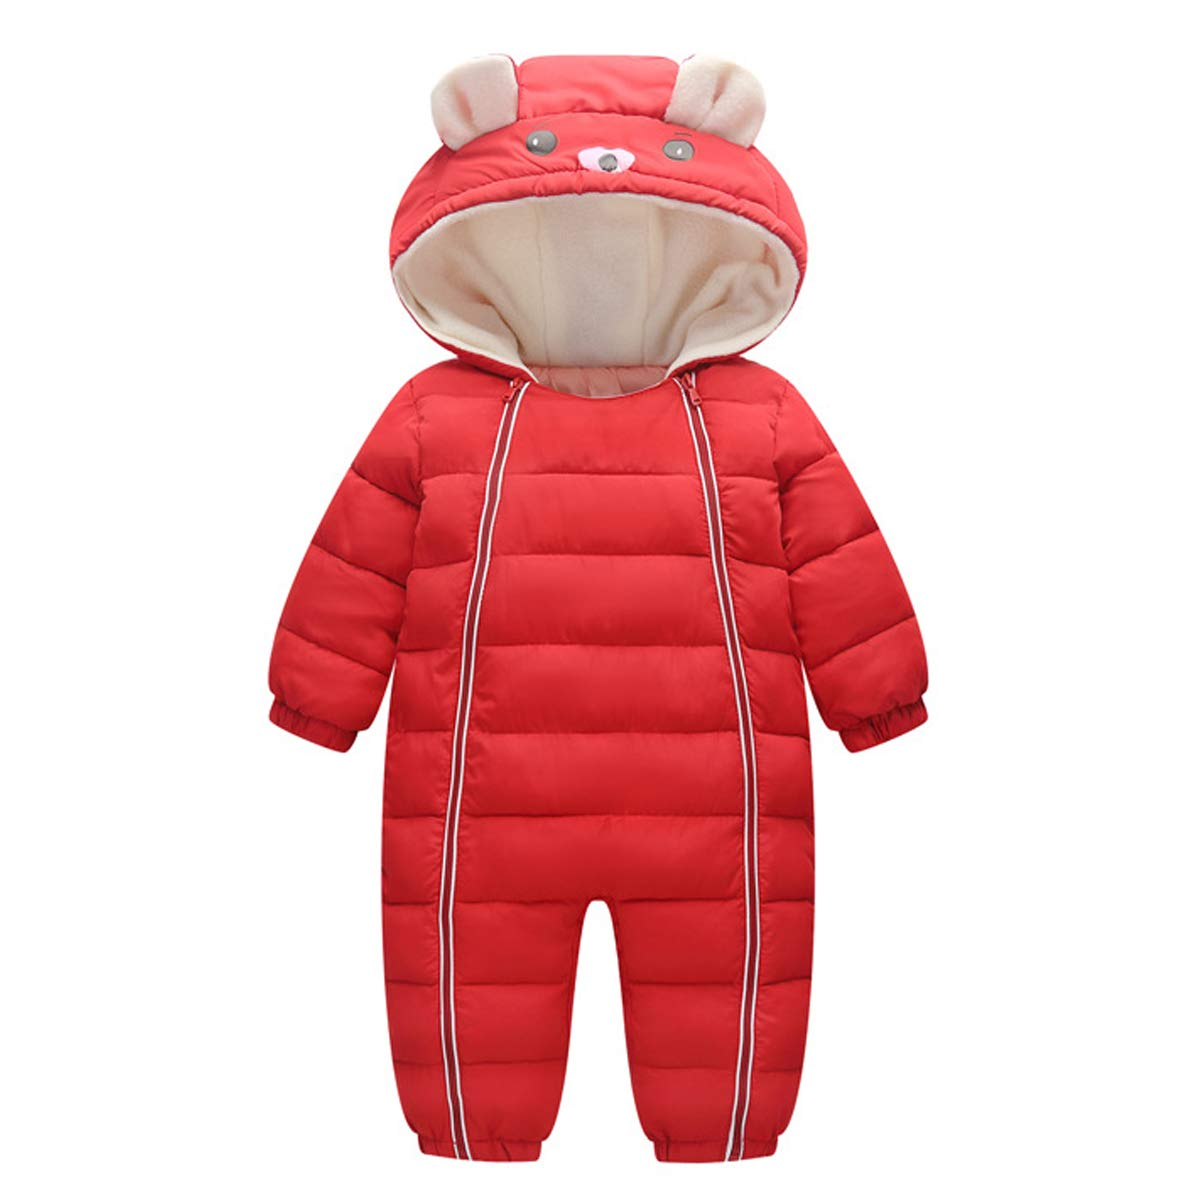 Bebone Baby Snowsuit Boy Girl Romper Jumpsuit Winter Clothes